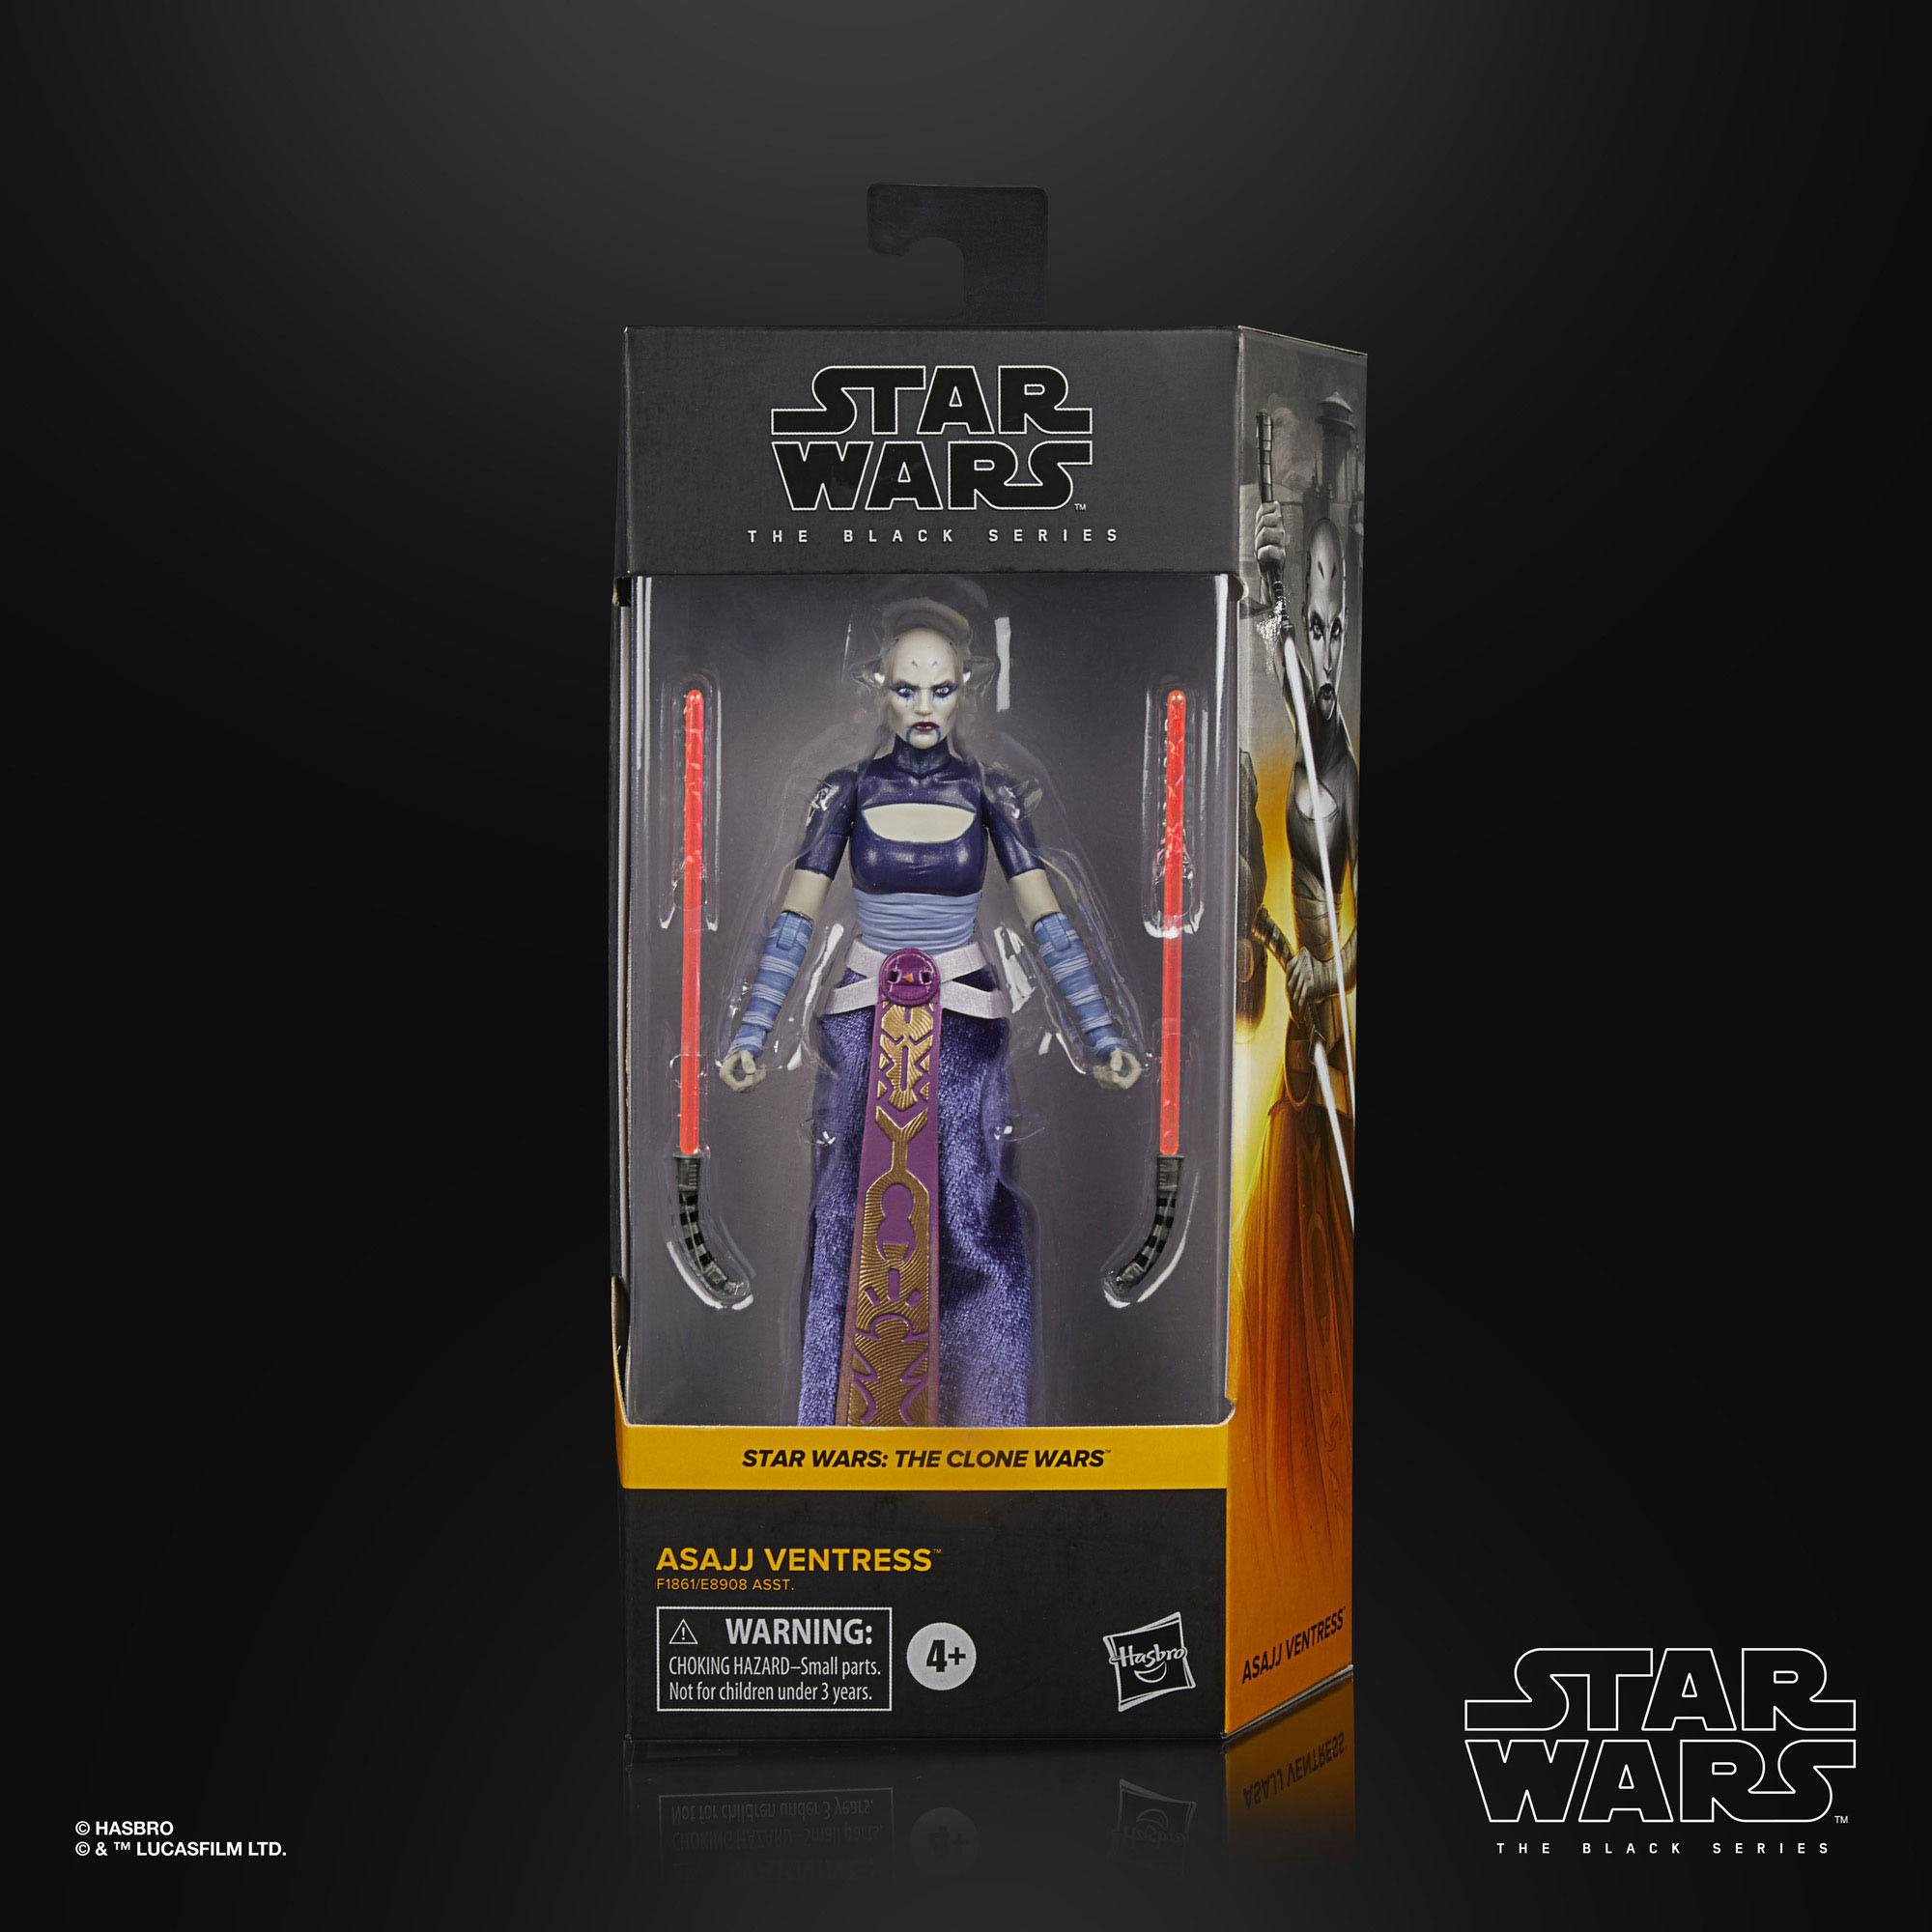 Star Wars The Black Series Asajj Ventress (The Clone Wars) 15cm Actionfigur  F1861 5010993813391